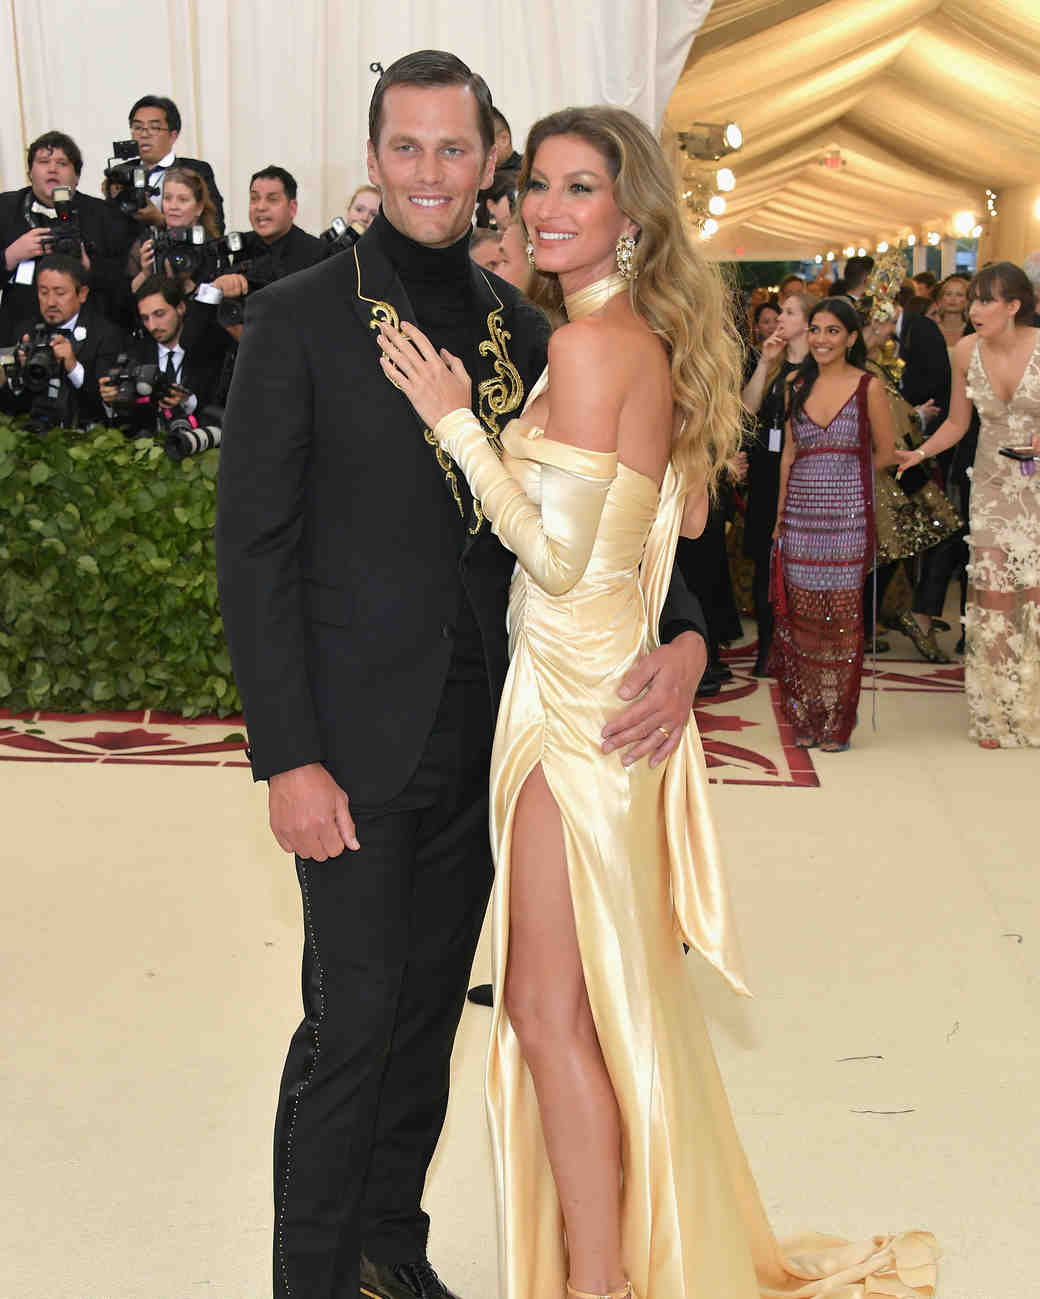 Gisele Bundchen Photos, News and Videos | Just Jared